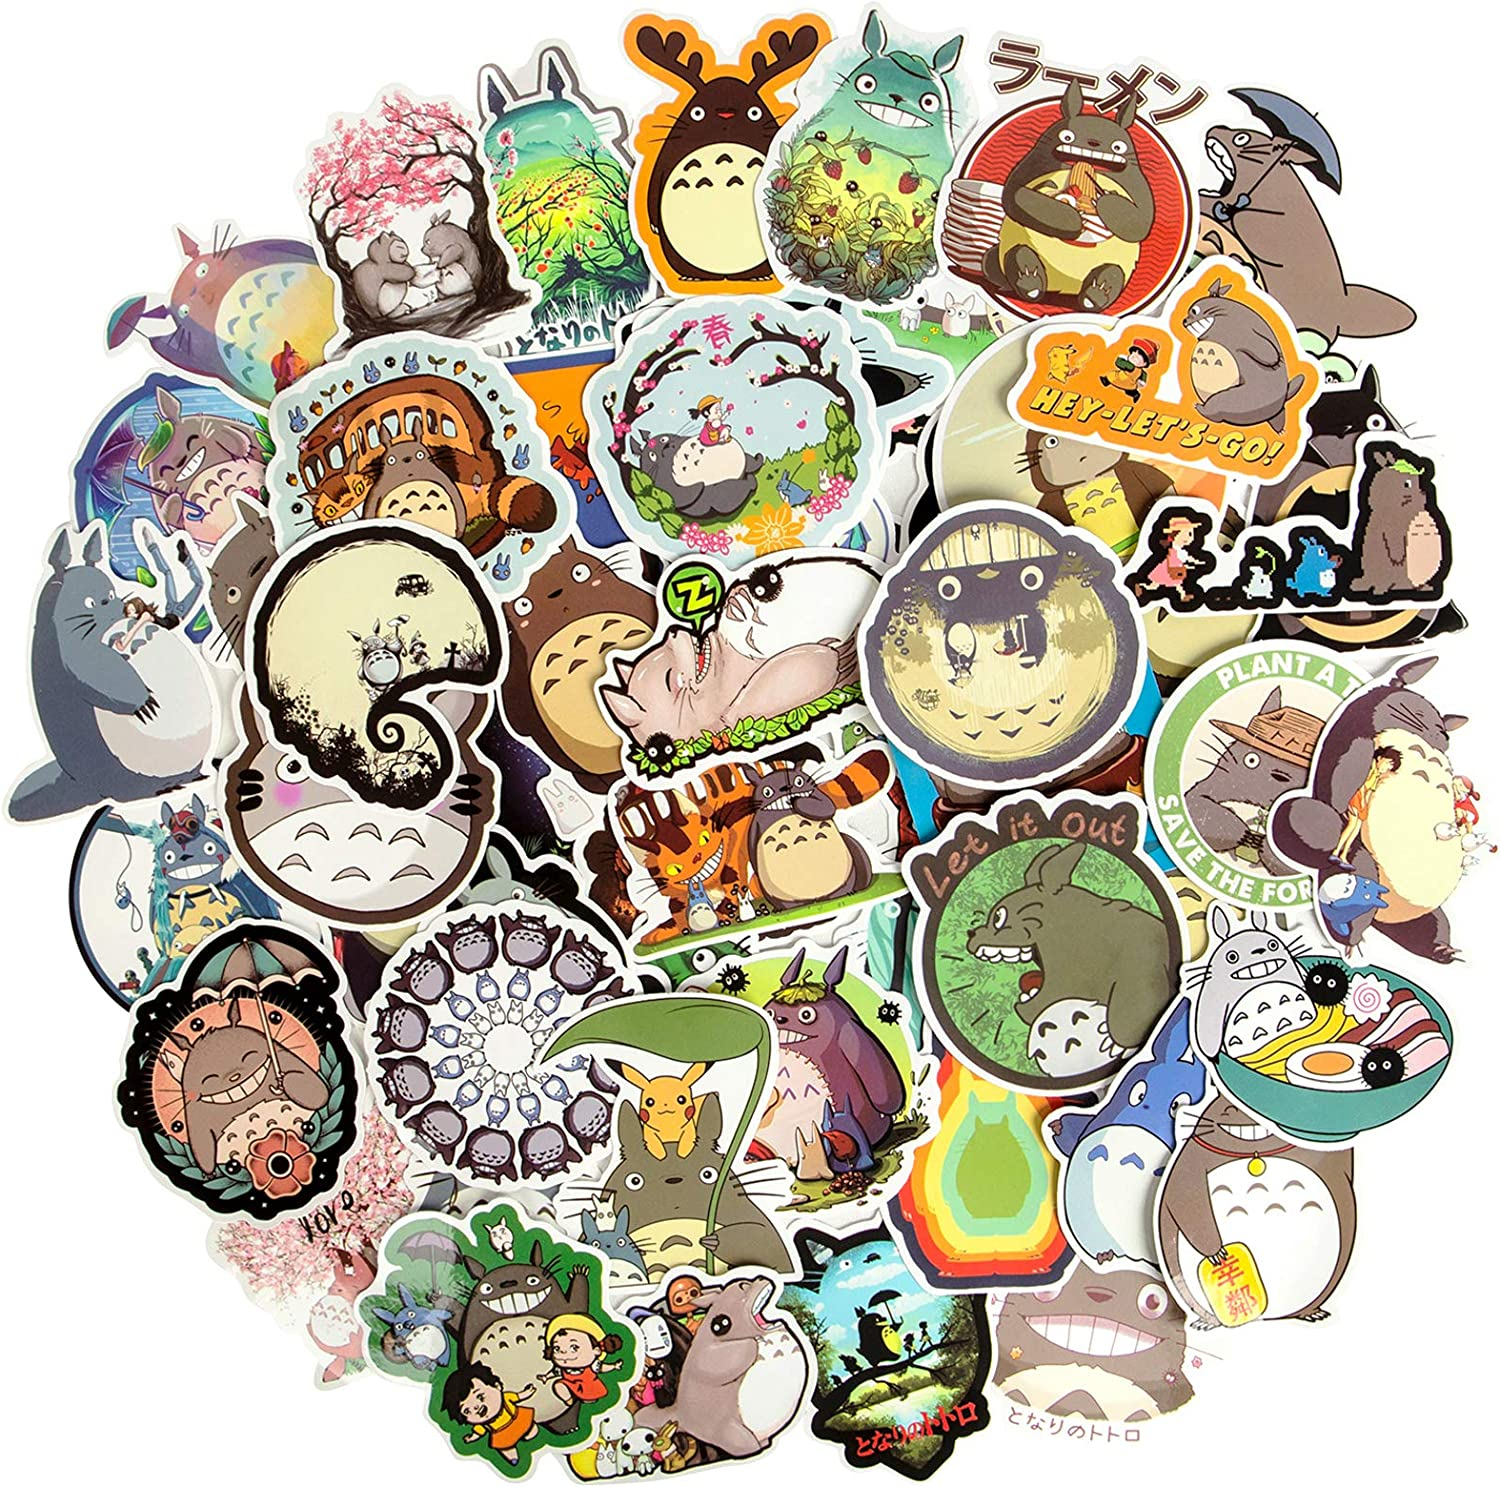 My Neighbor Totoro Stickers, Cute Cartoon Anime Stickers Waterproof Vinyl Stickers for Water Bottles Skateboard Stickers Laptop Stickers for Teens Luggage MacBook Bicycle Snowboard Decals[64PCS]